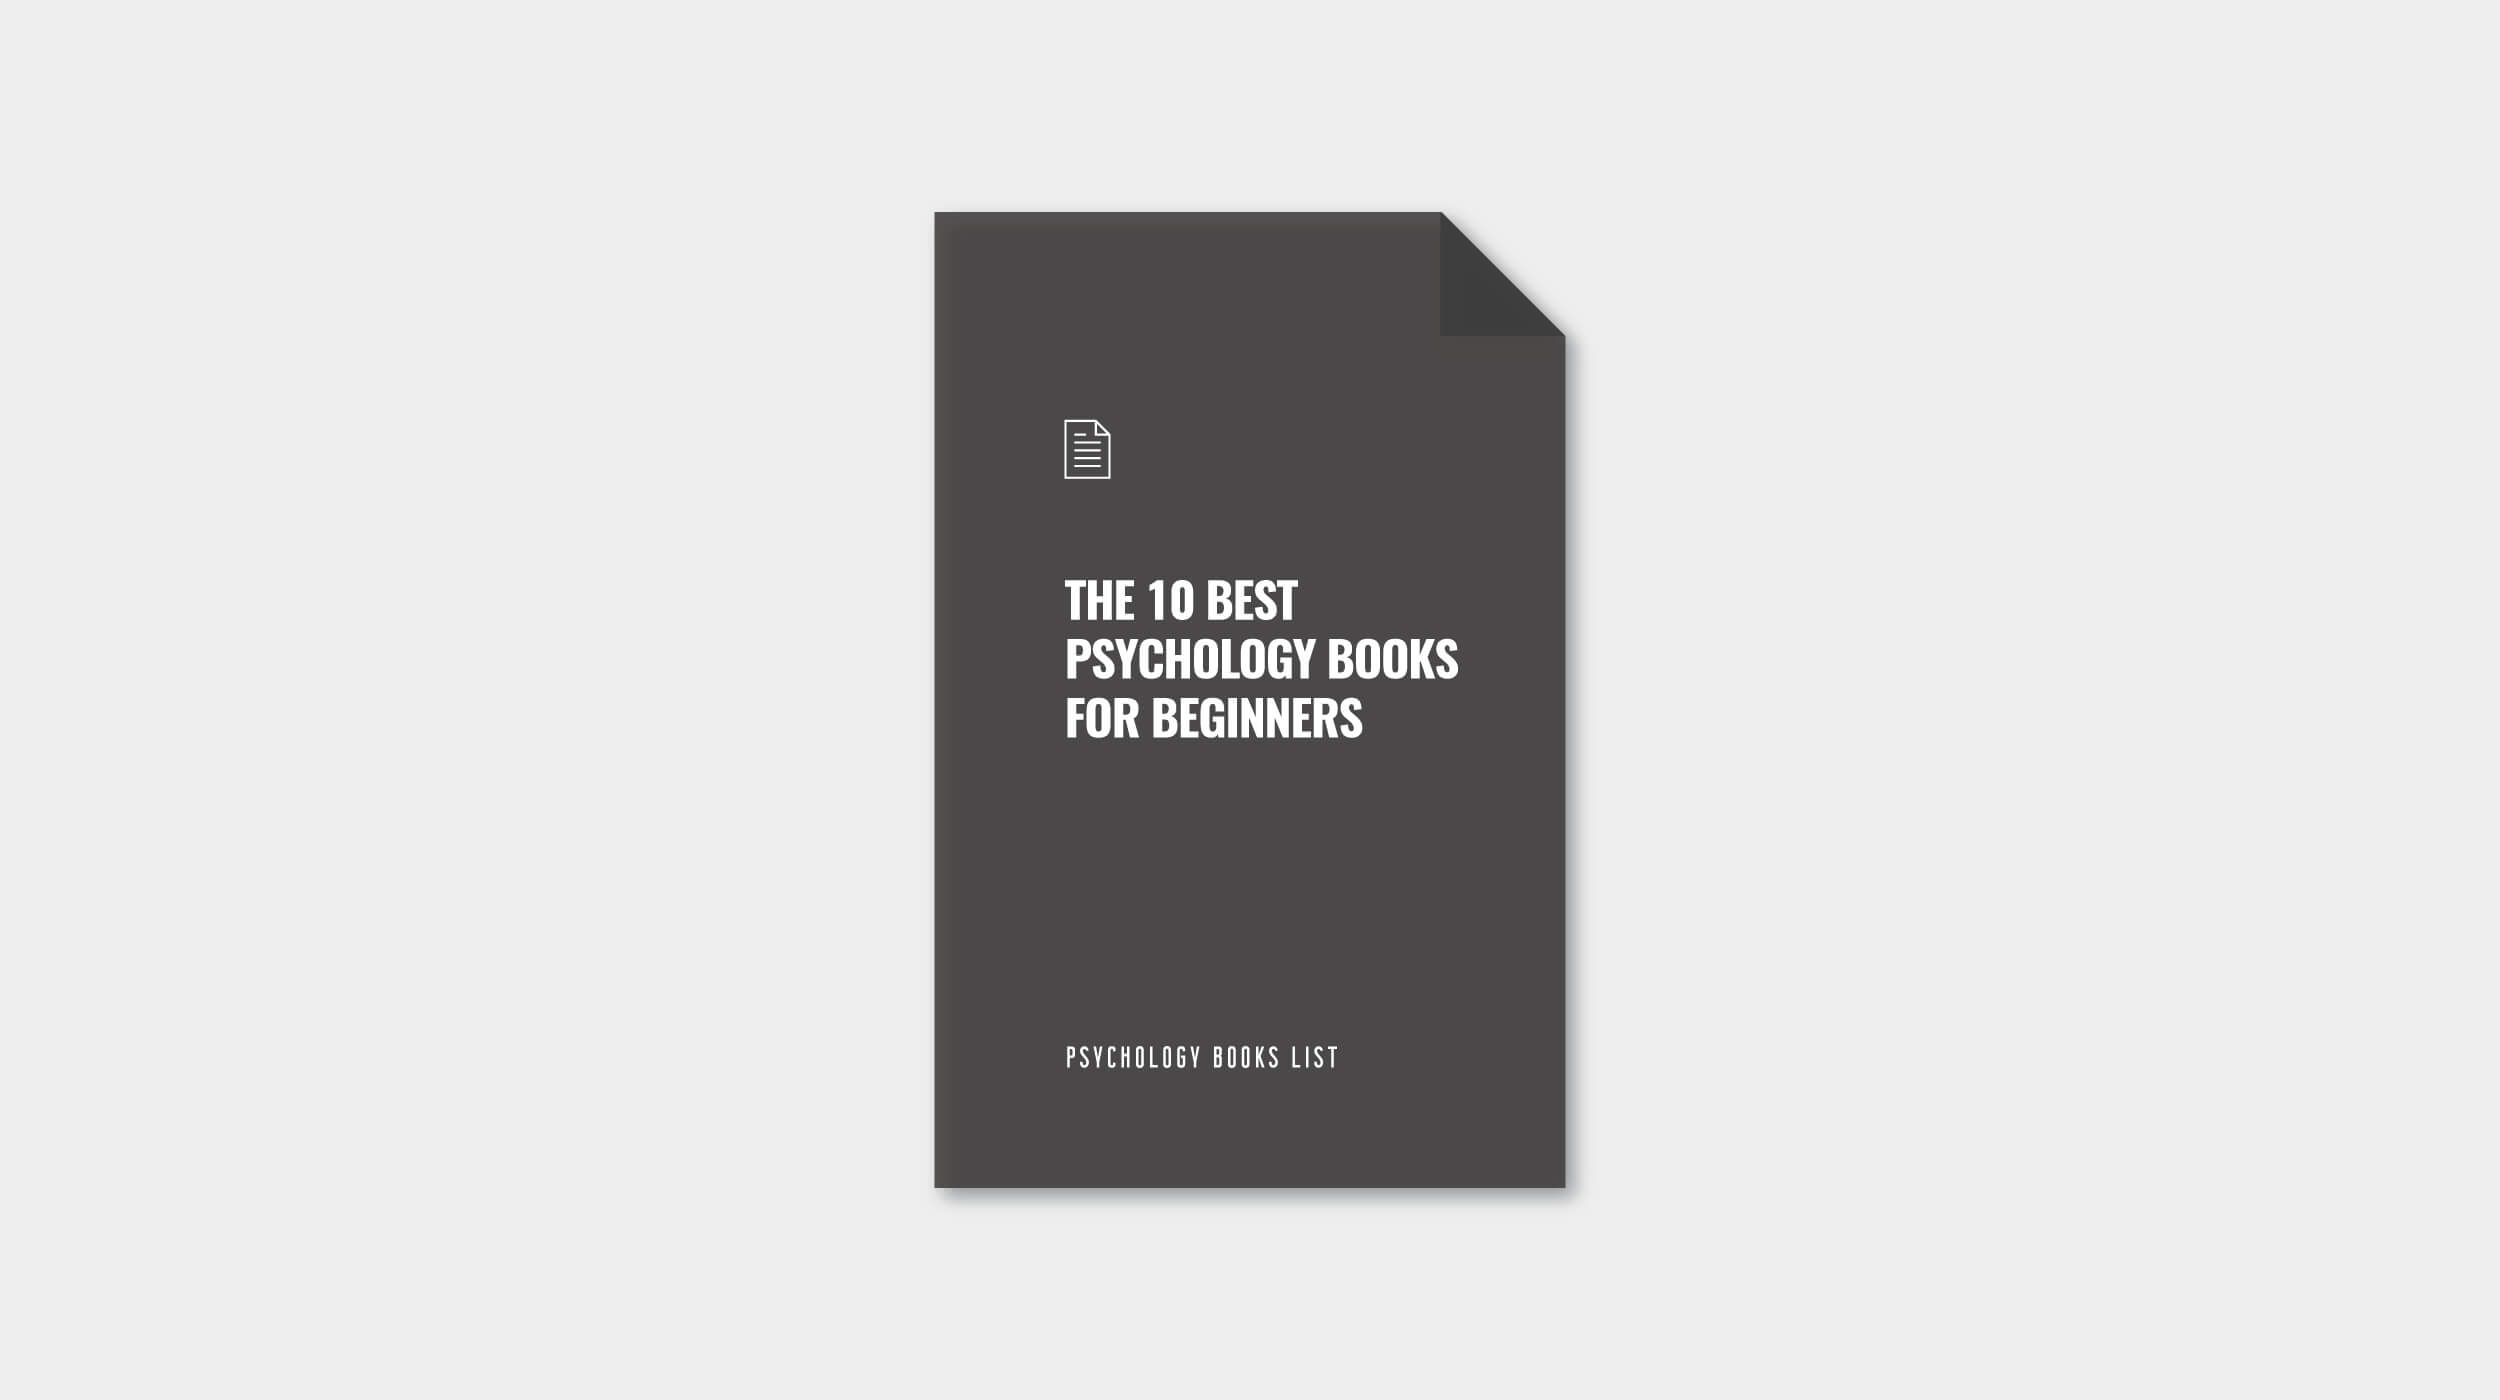 Best-Psychology-Books-For-Beginners-book-list-cover